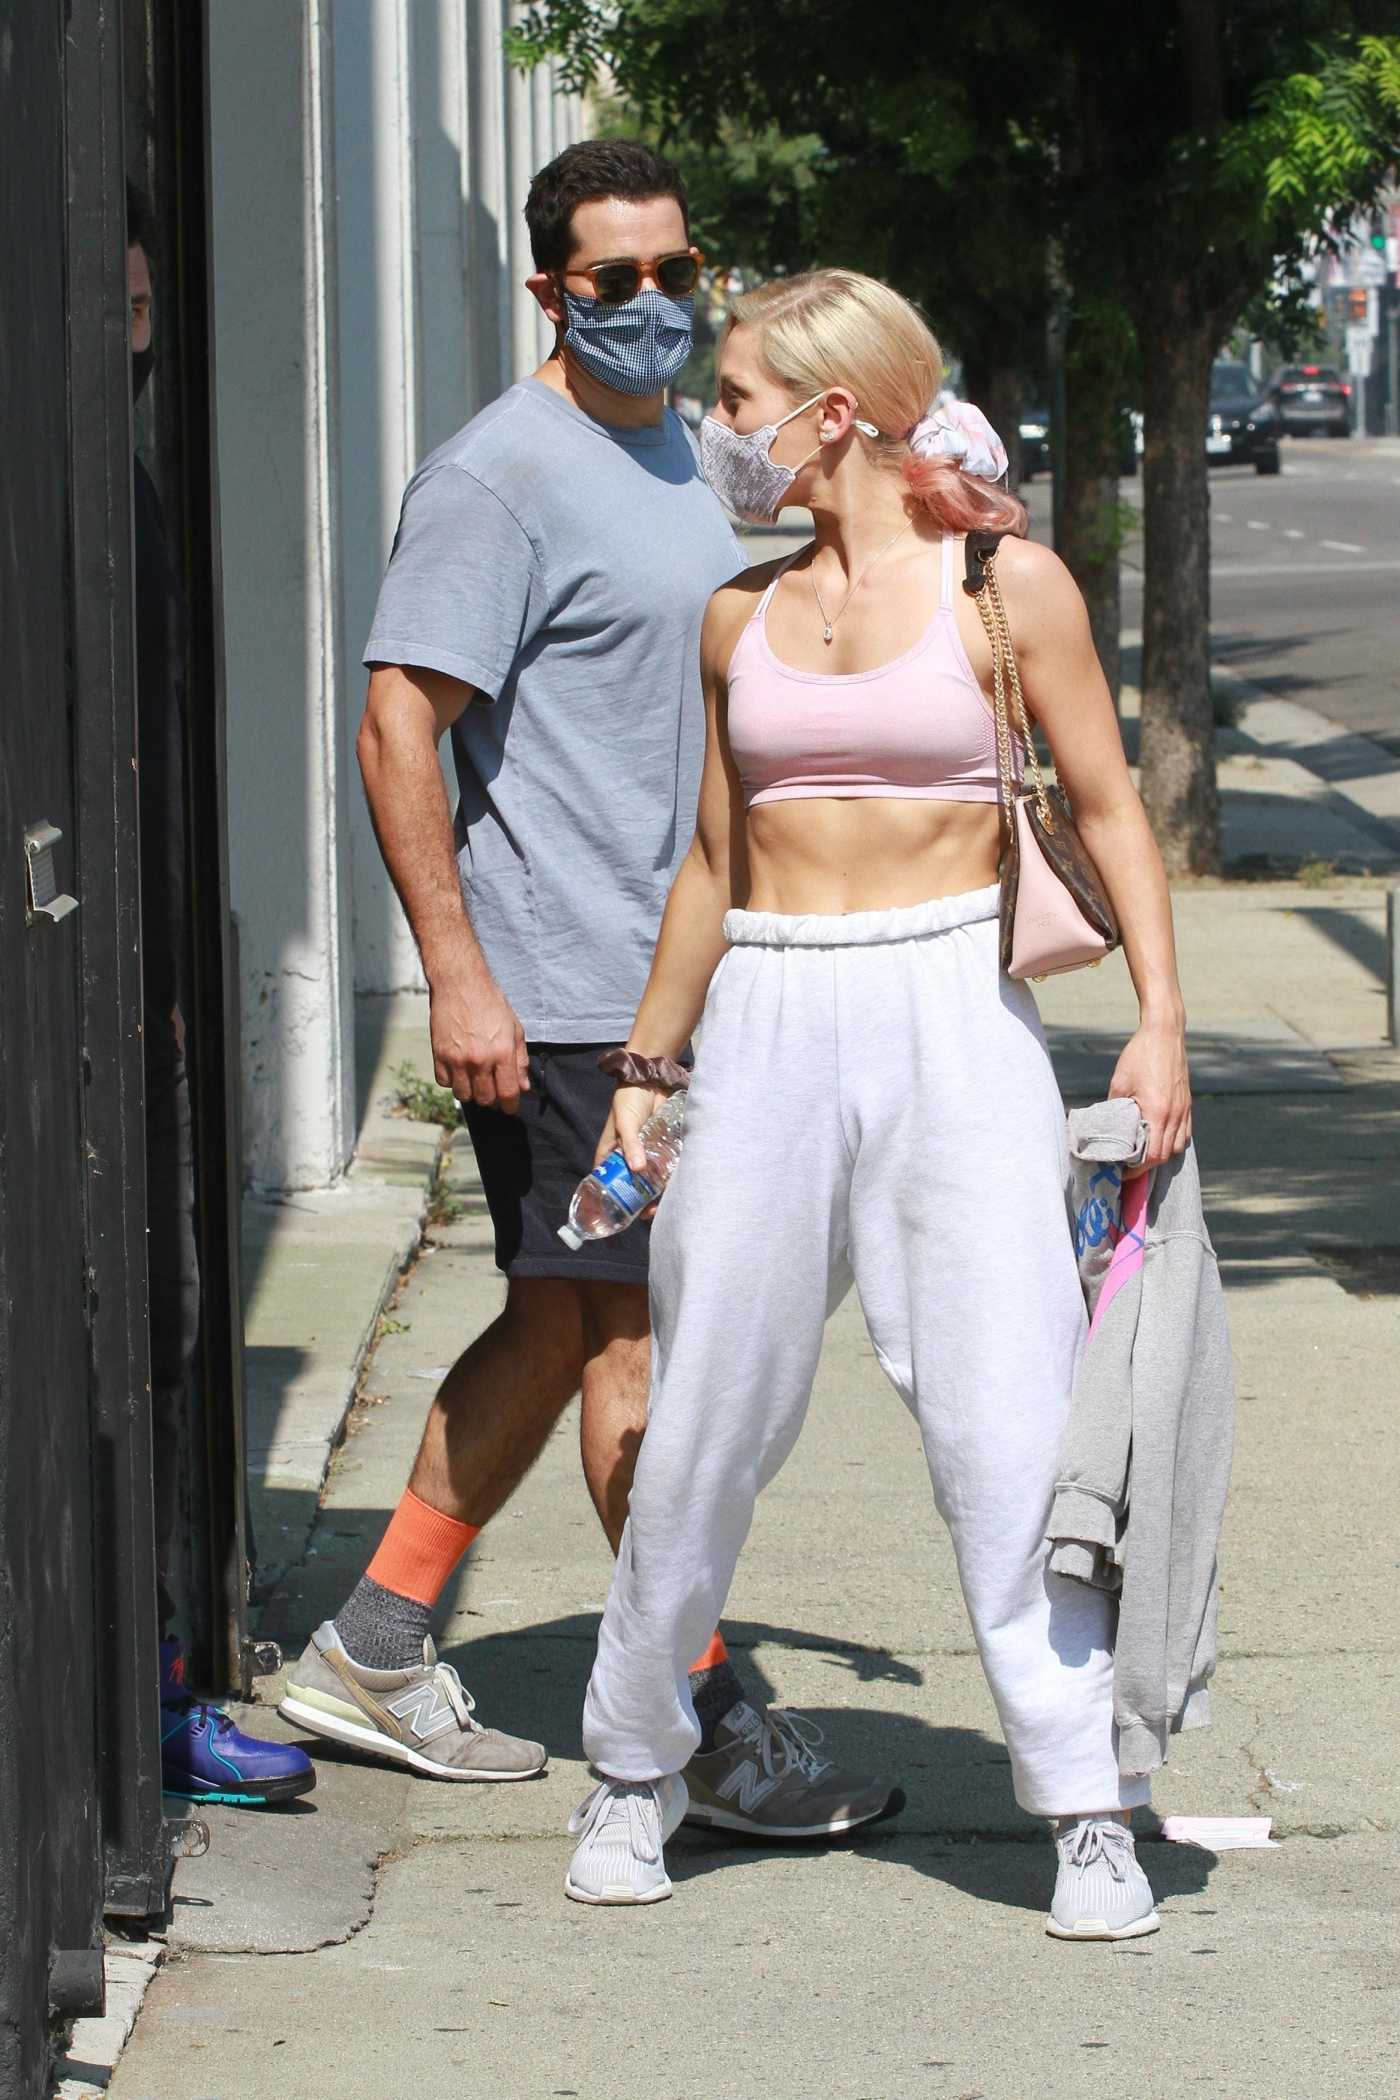 Sharna Burgess in a Pink Sports Bra Leaves the DWTS Studio in Los Angeles 10/06/2020